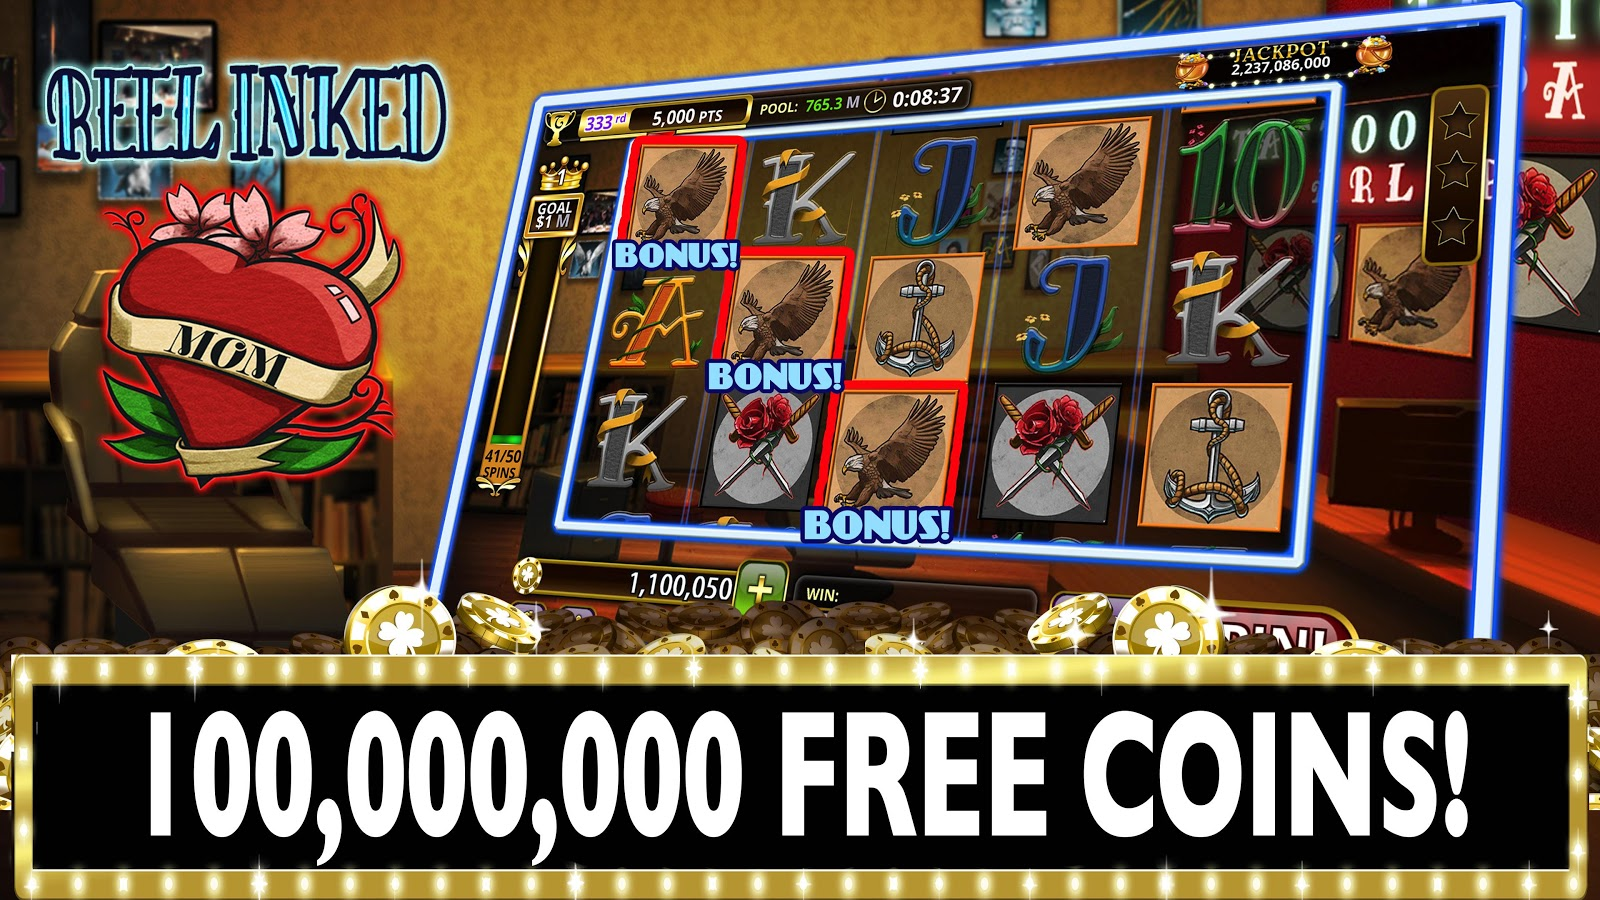 Billionairs Slot - Try the Online Game for Free Now